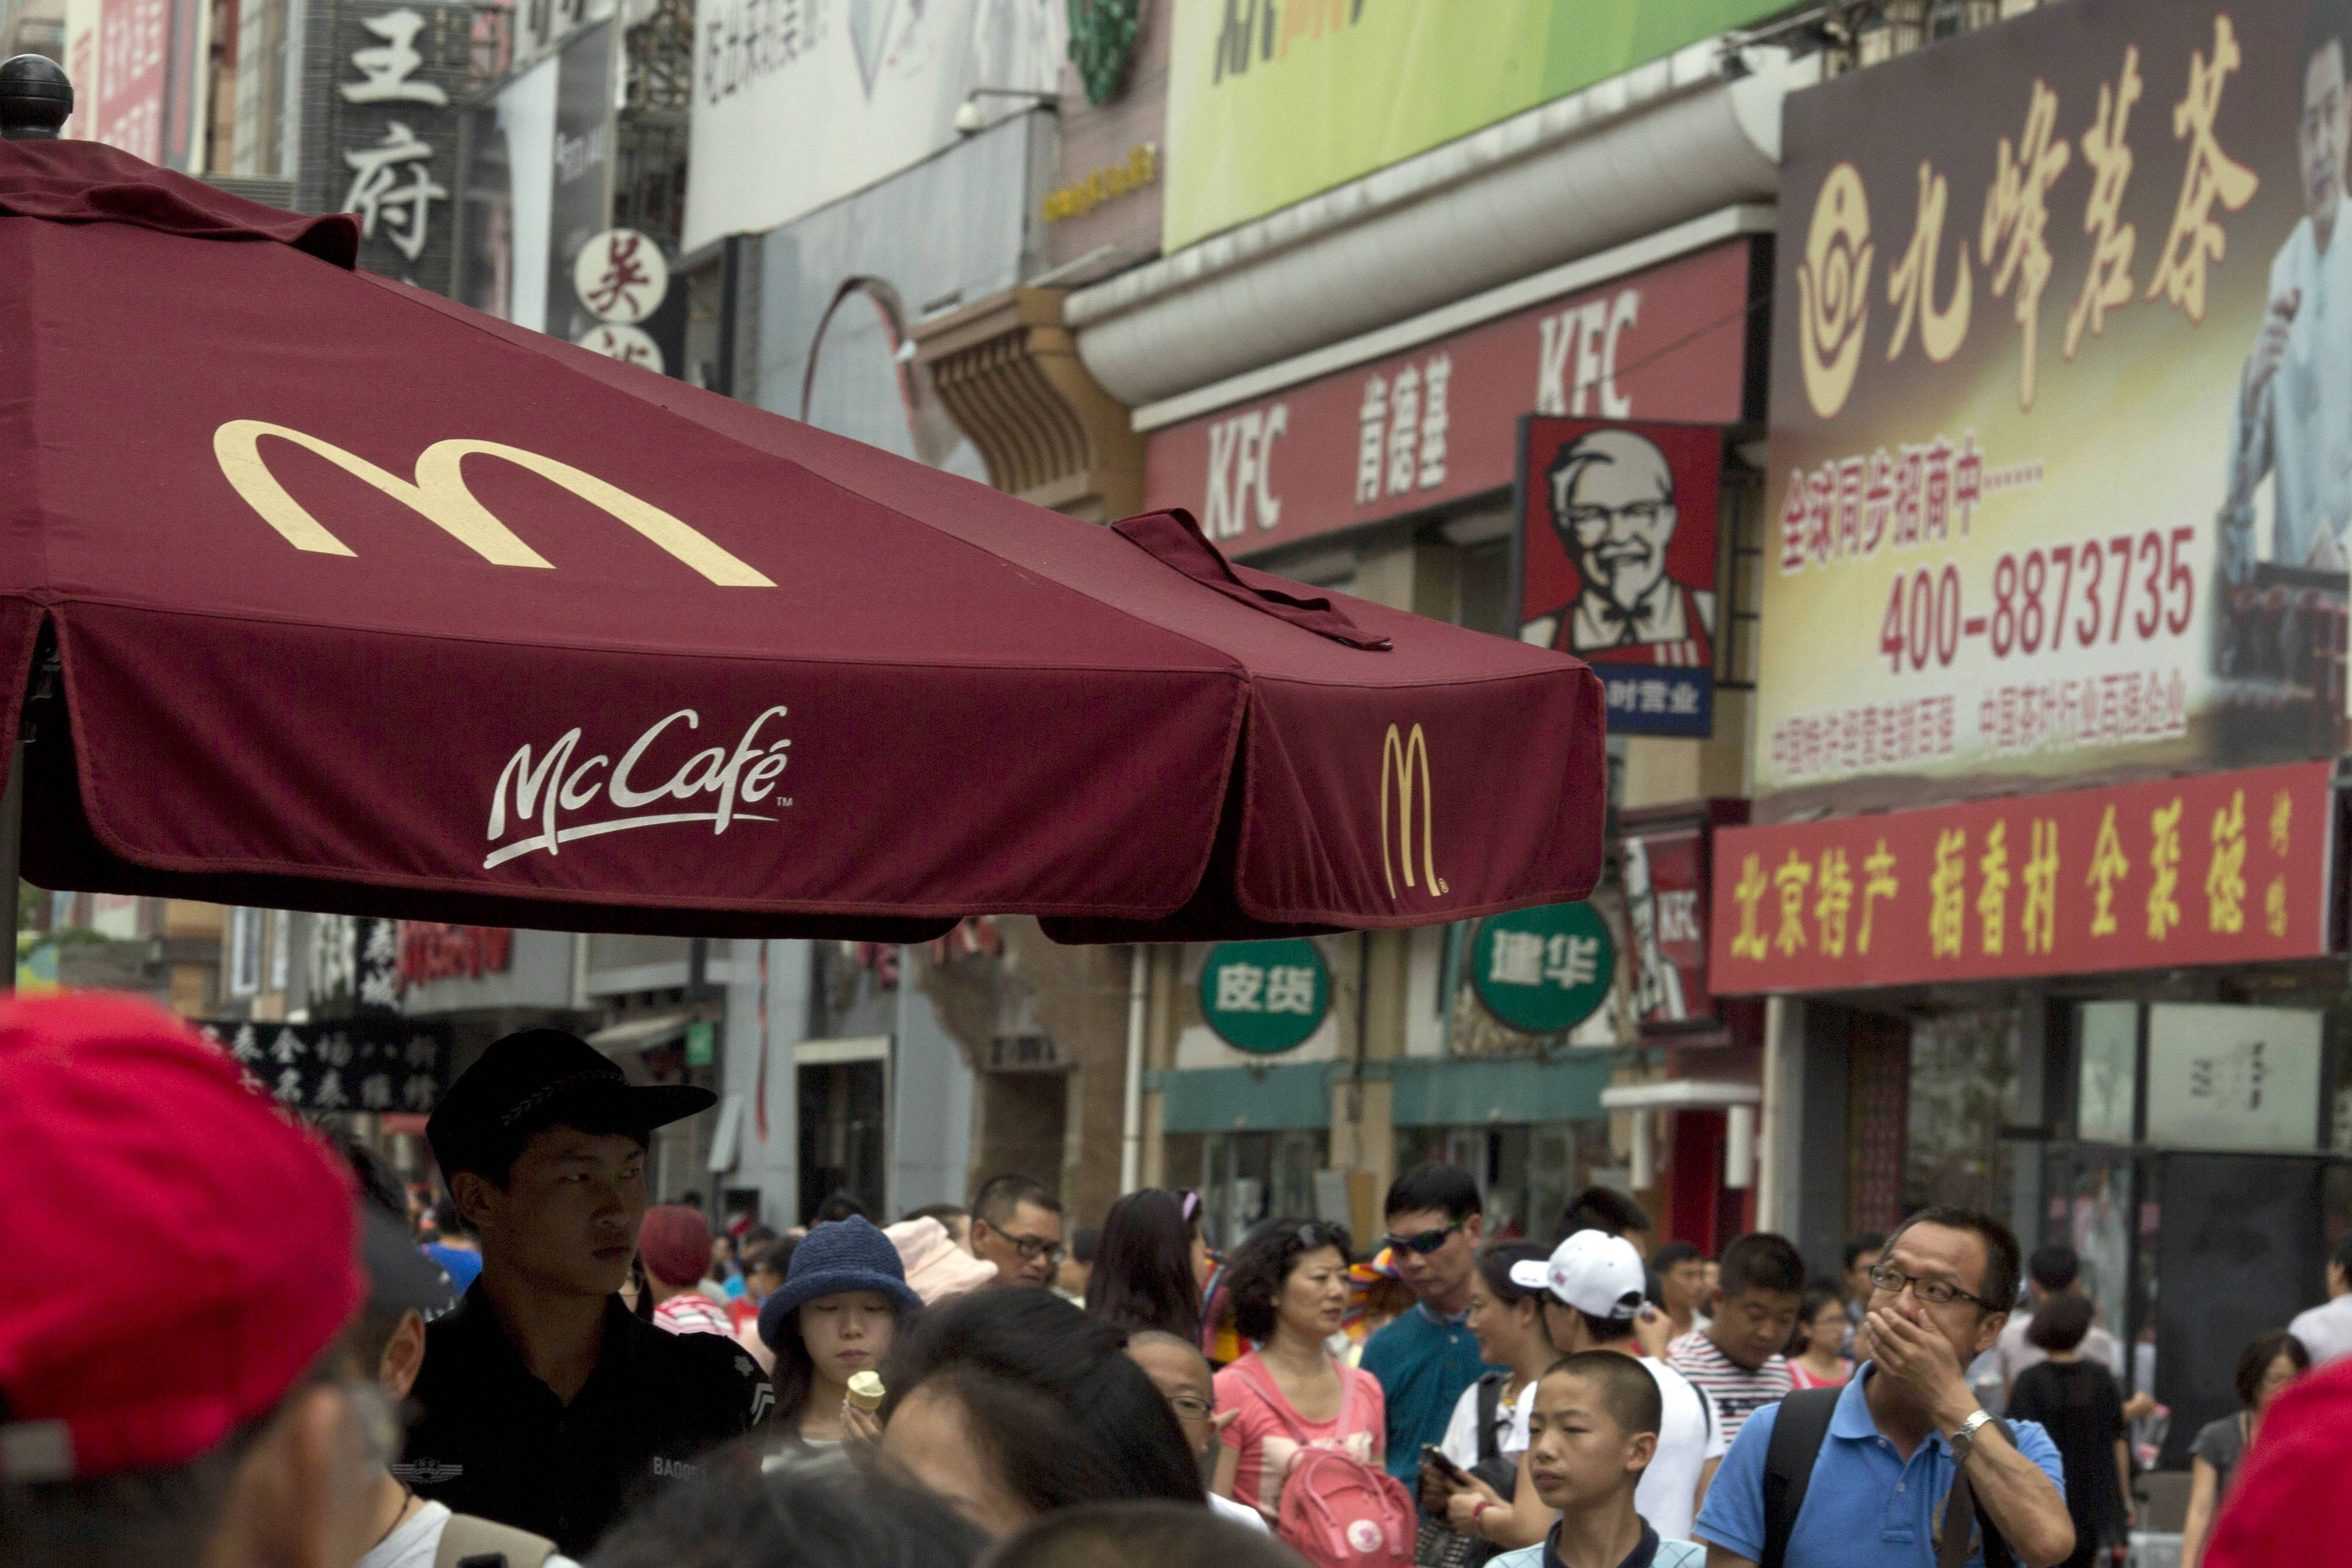 A man wipes his mouth near logos for McDonald's and KFC restaurants in Beijing Tuesday. McDonald's in Japan is increasing its checks on chicken from suppliers in China and Thailand after allegations a Chinese supplier sold expired chicken. It says the scare will hurt its earnings.